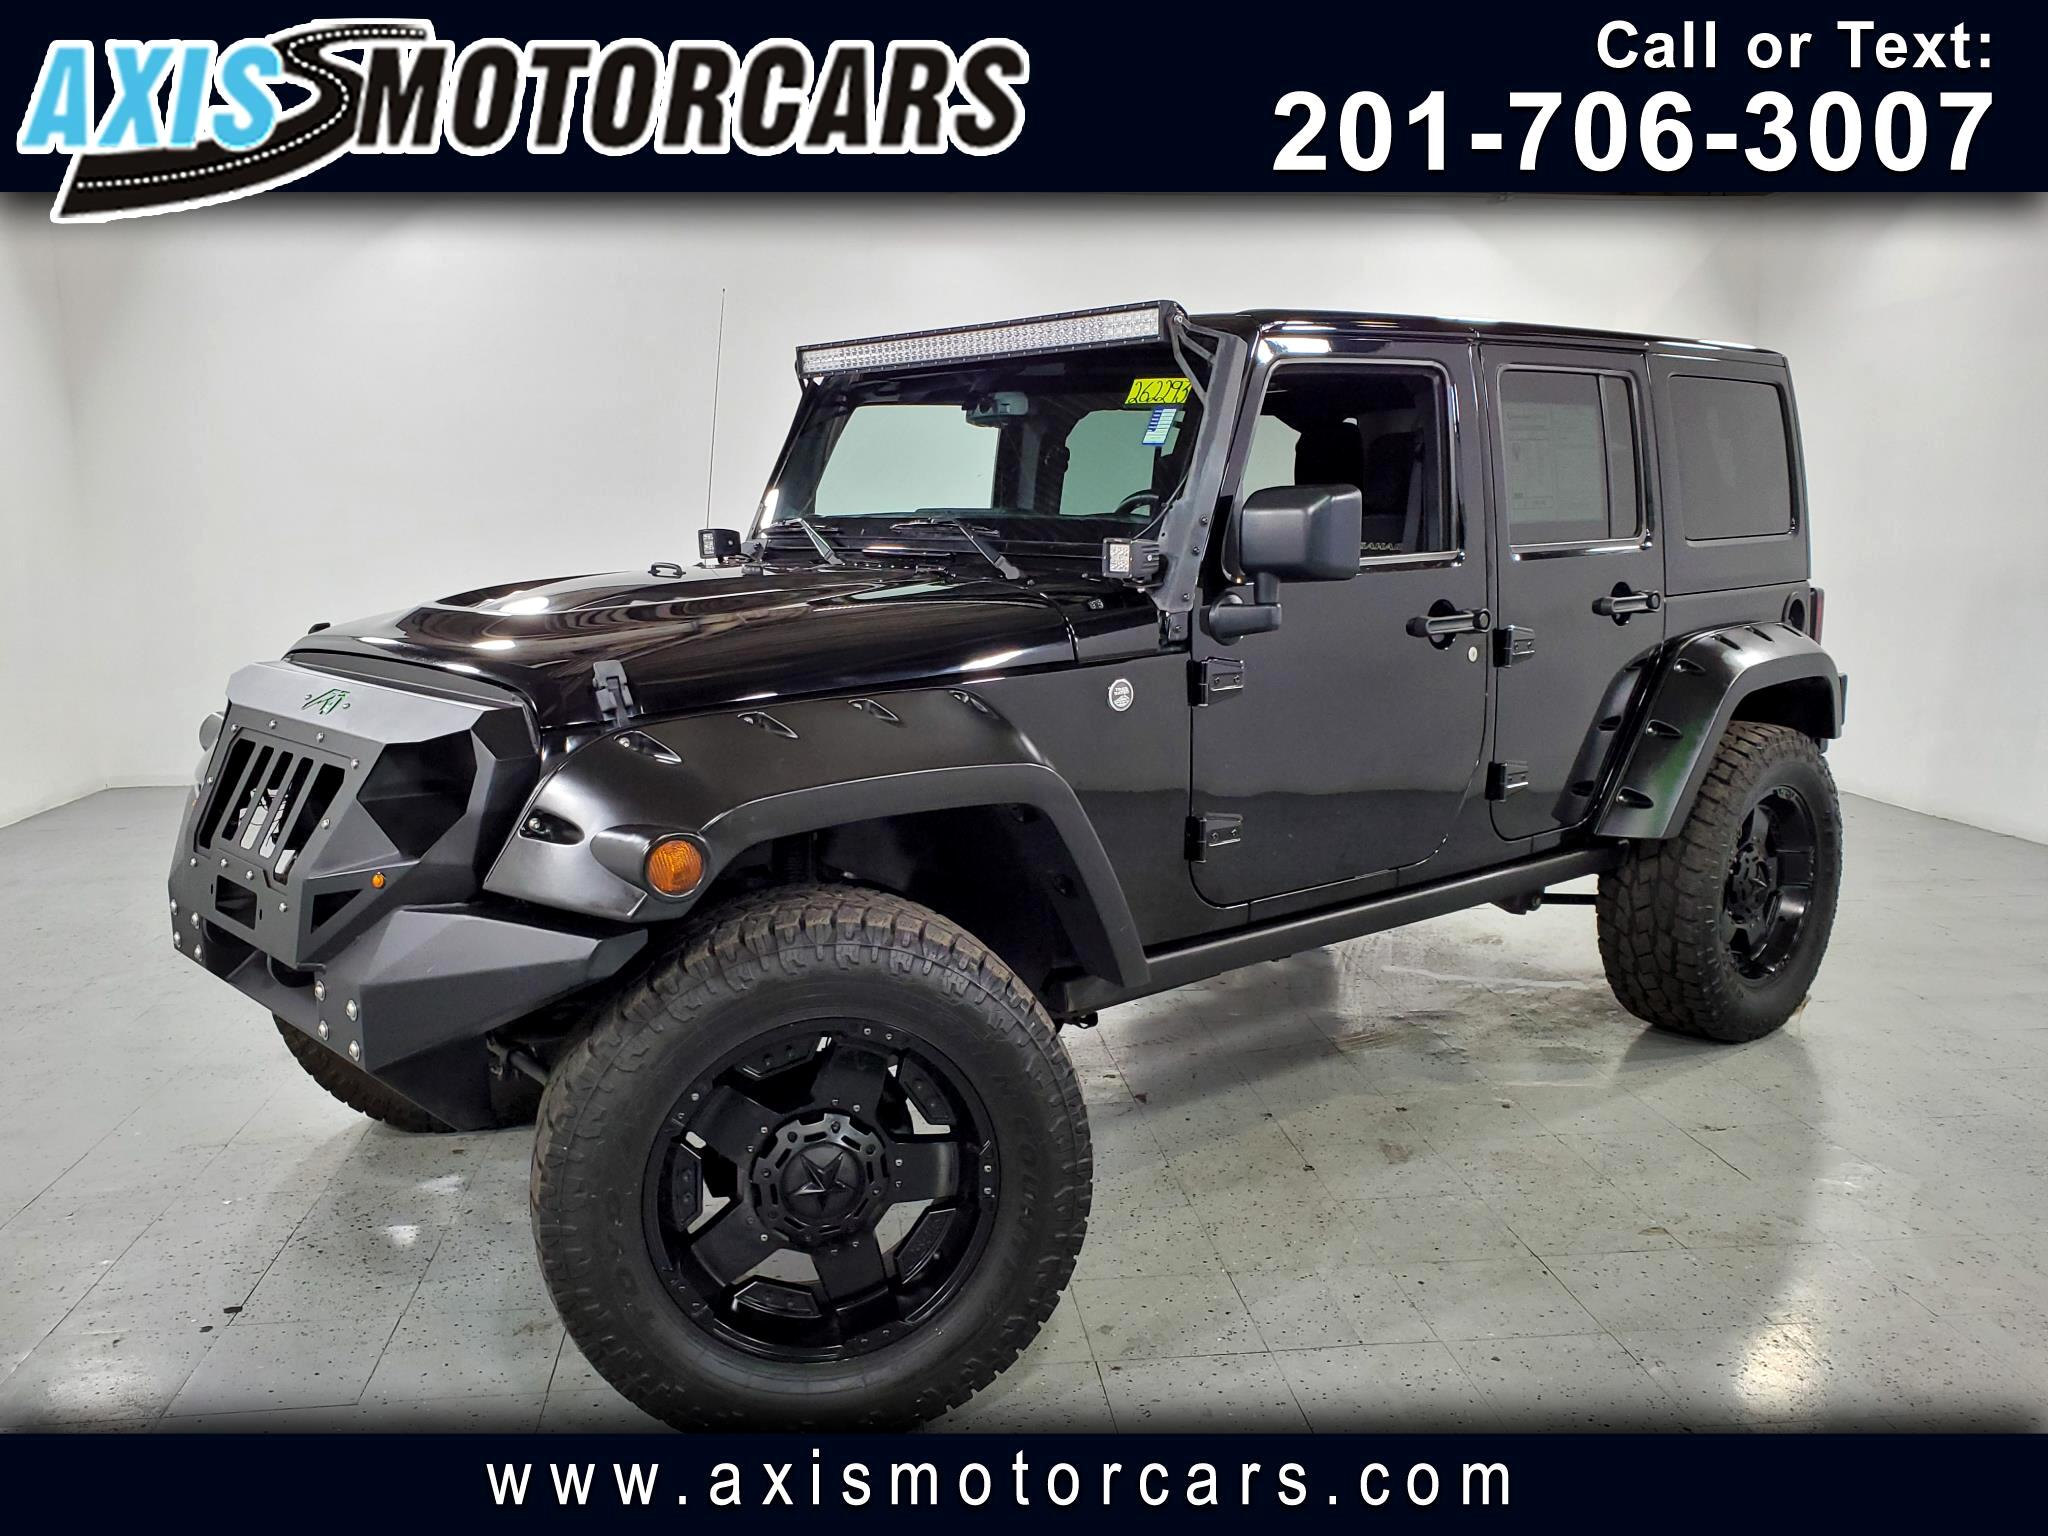 2016 Jeep Wrangler Unlimited 4dr Sahara w/Navigation